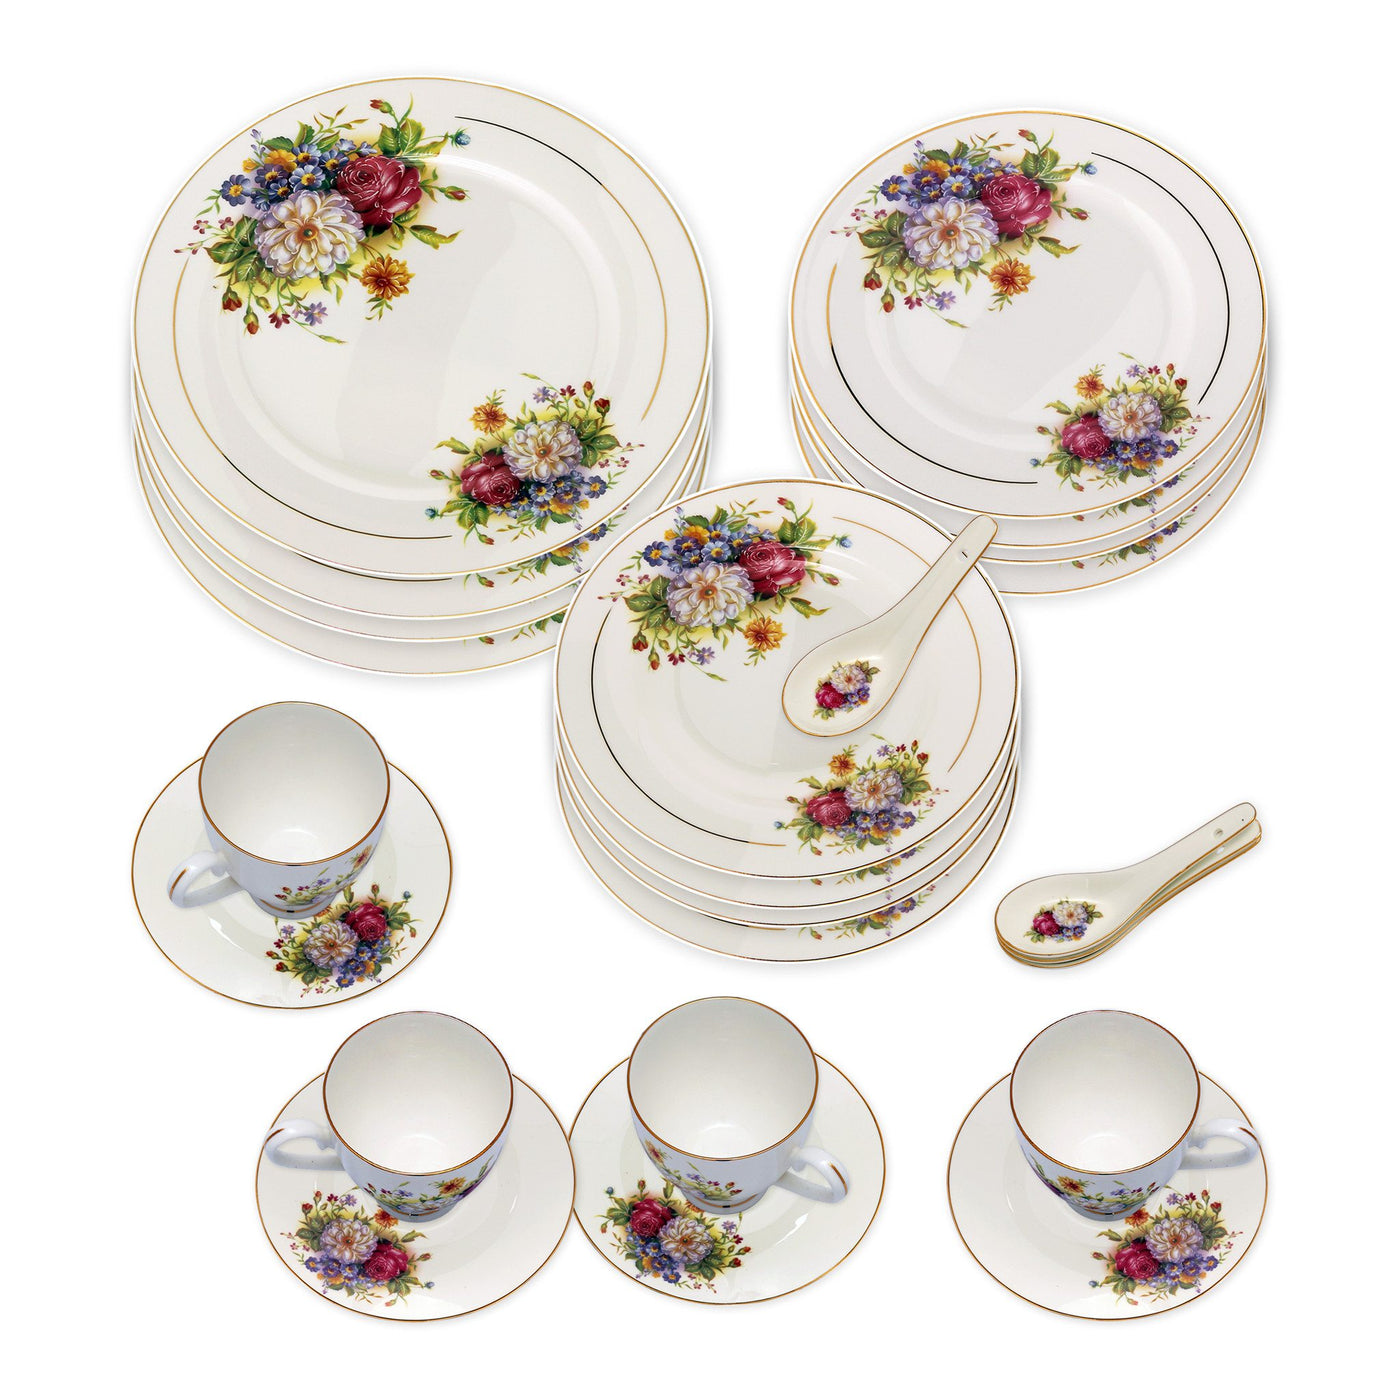 ... Dinnerwares - Bone China 24 Piece Dinnerware Set Colorful Blossom And Gold Rims Service For ...  sc 1 st  Homenique.net & Fine Bone China Dinnerware Sets - 24 Piece Service for 4 in Floral ...